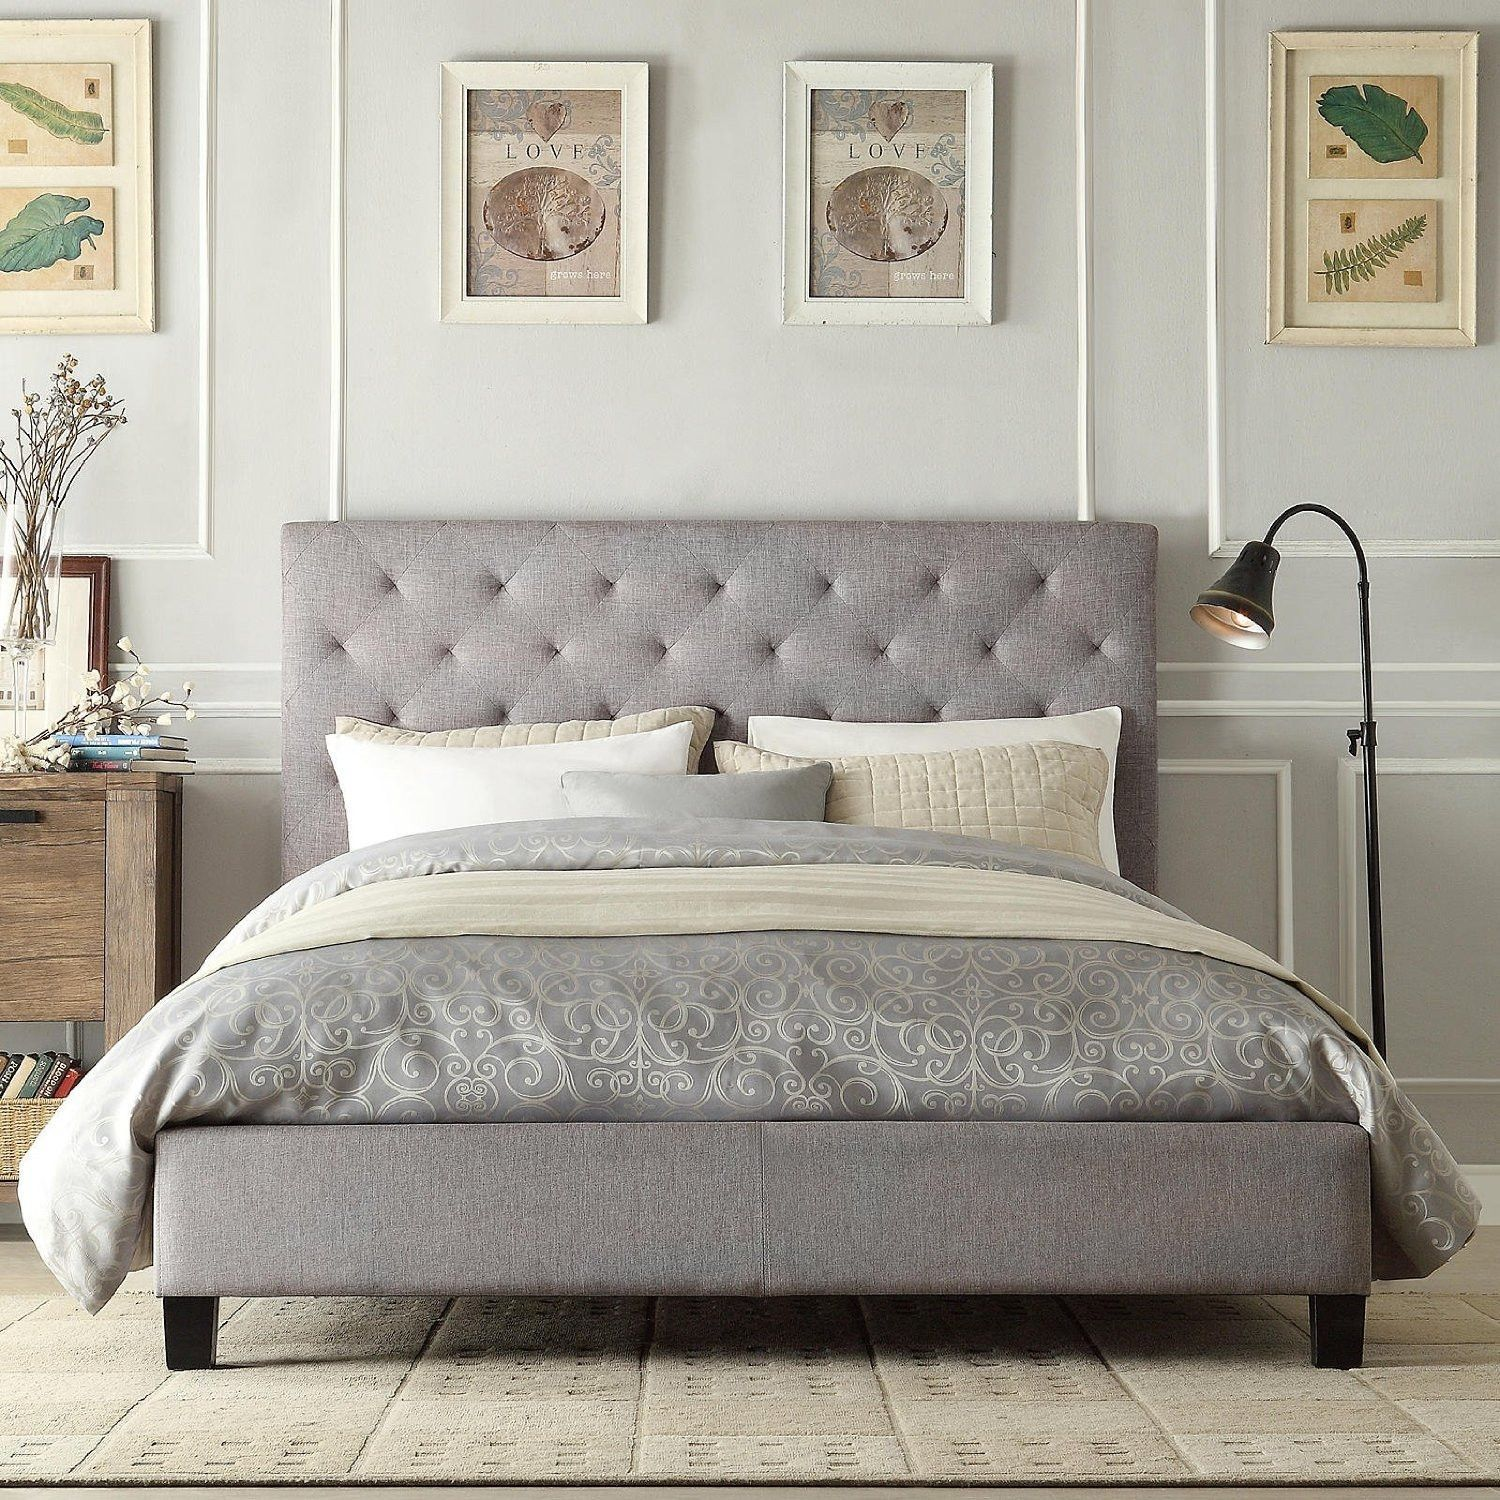 Queen Size Button Tufted Grey Upholstered Platform Bed Upholstered Platform Bed Bed Design Grey Platform Bed